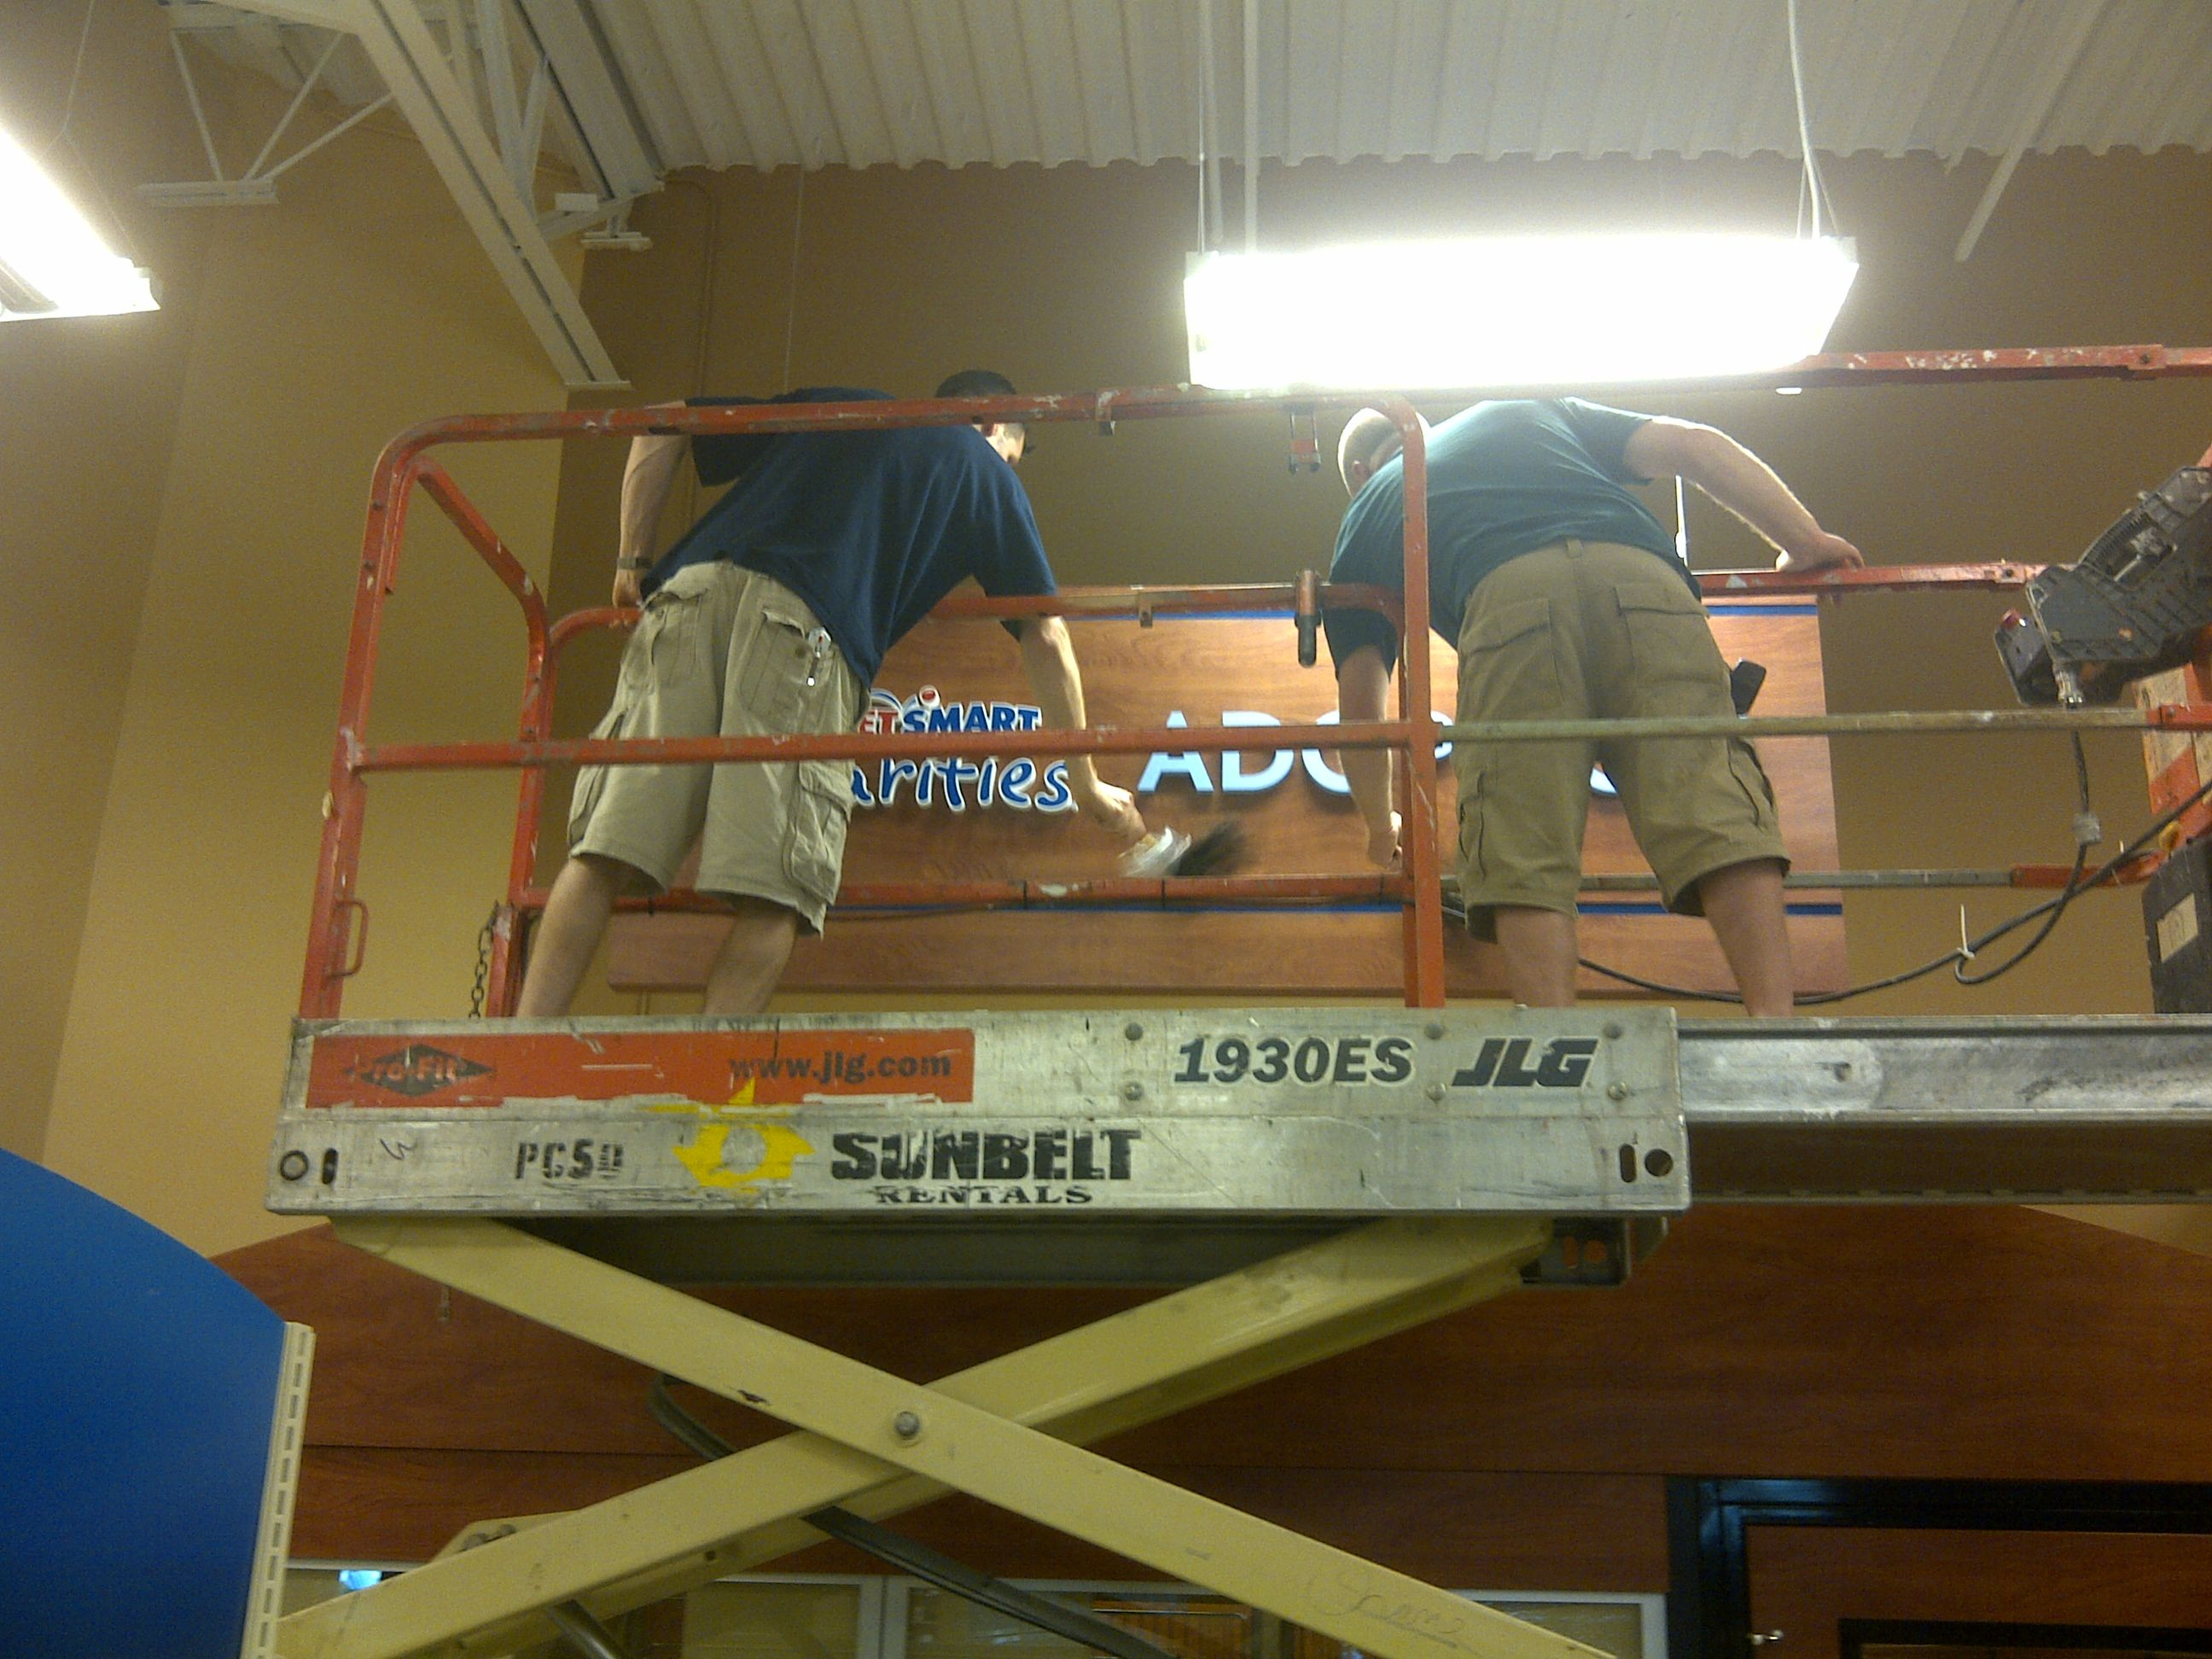 DisplayMax Fixtures here to do your stores remodel. Call 810-494-0400